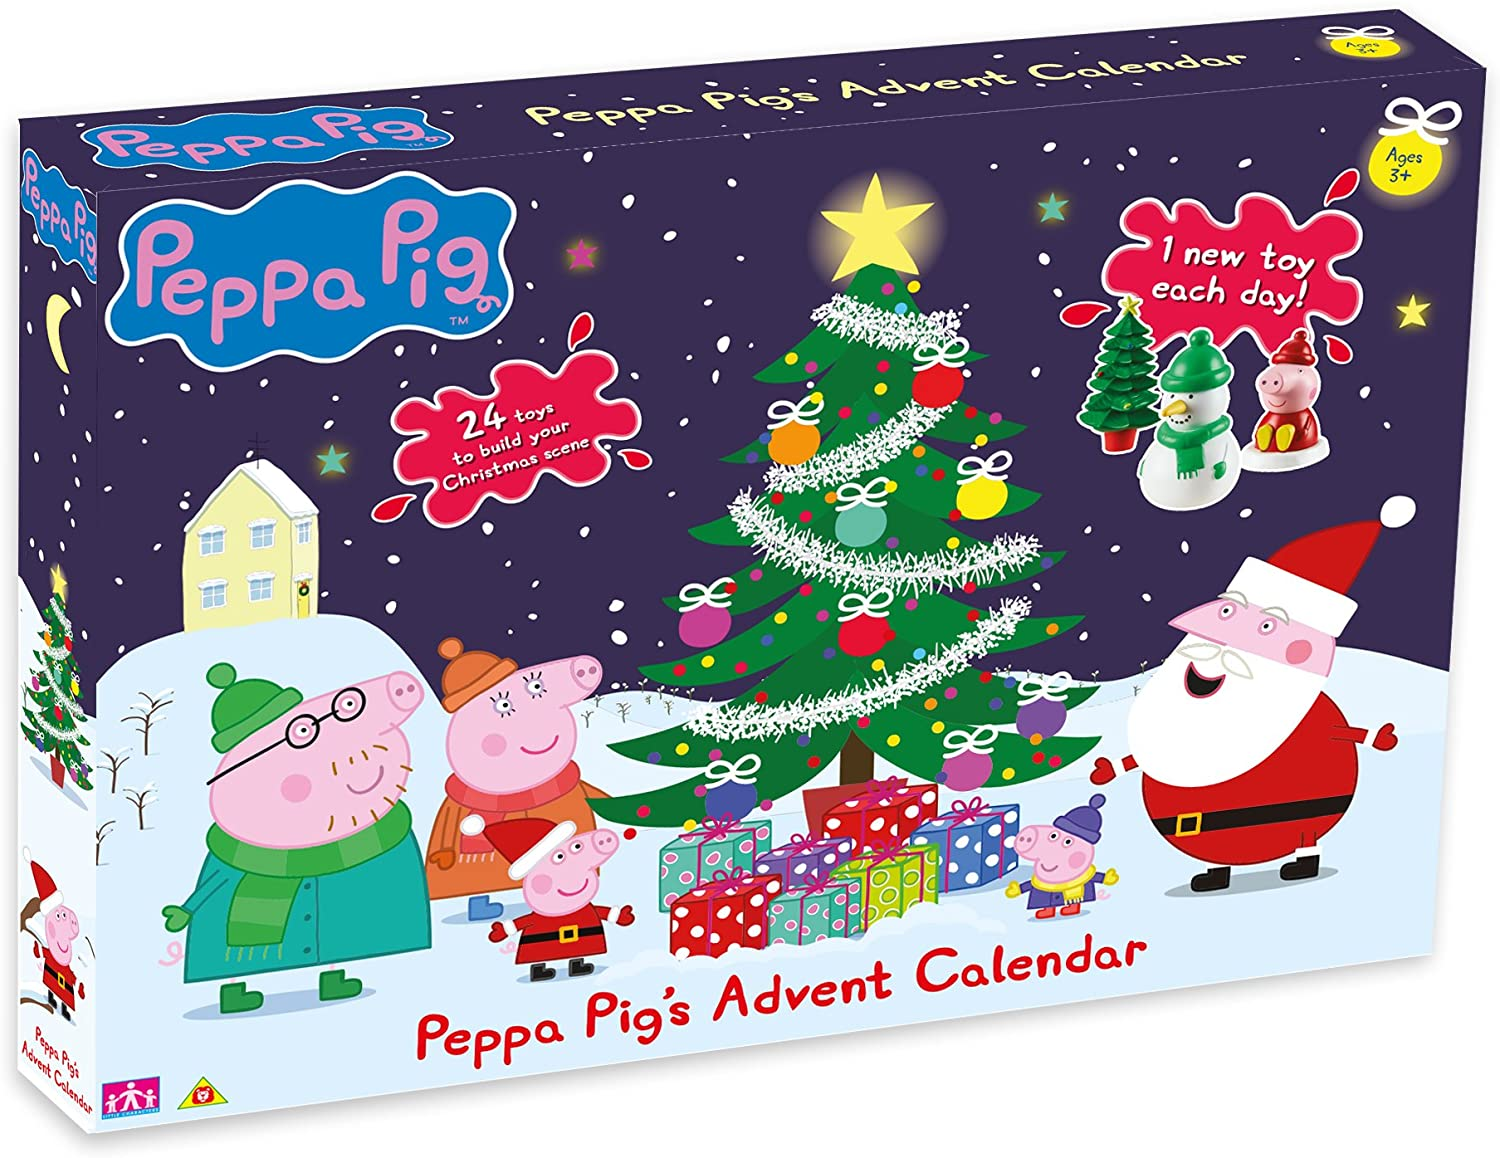 peppa-pig-advent-calendar